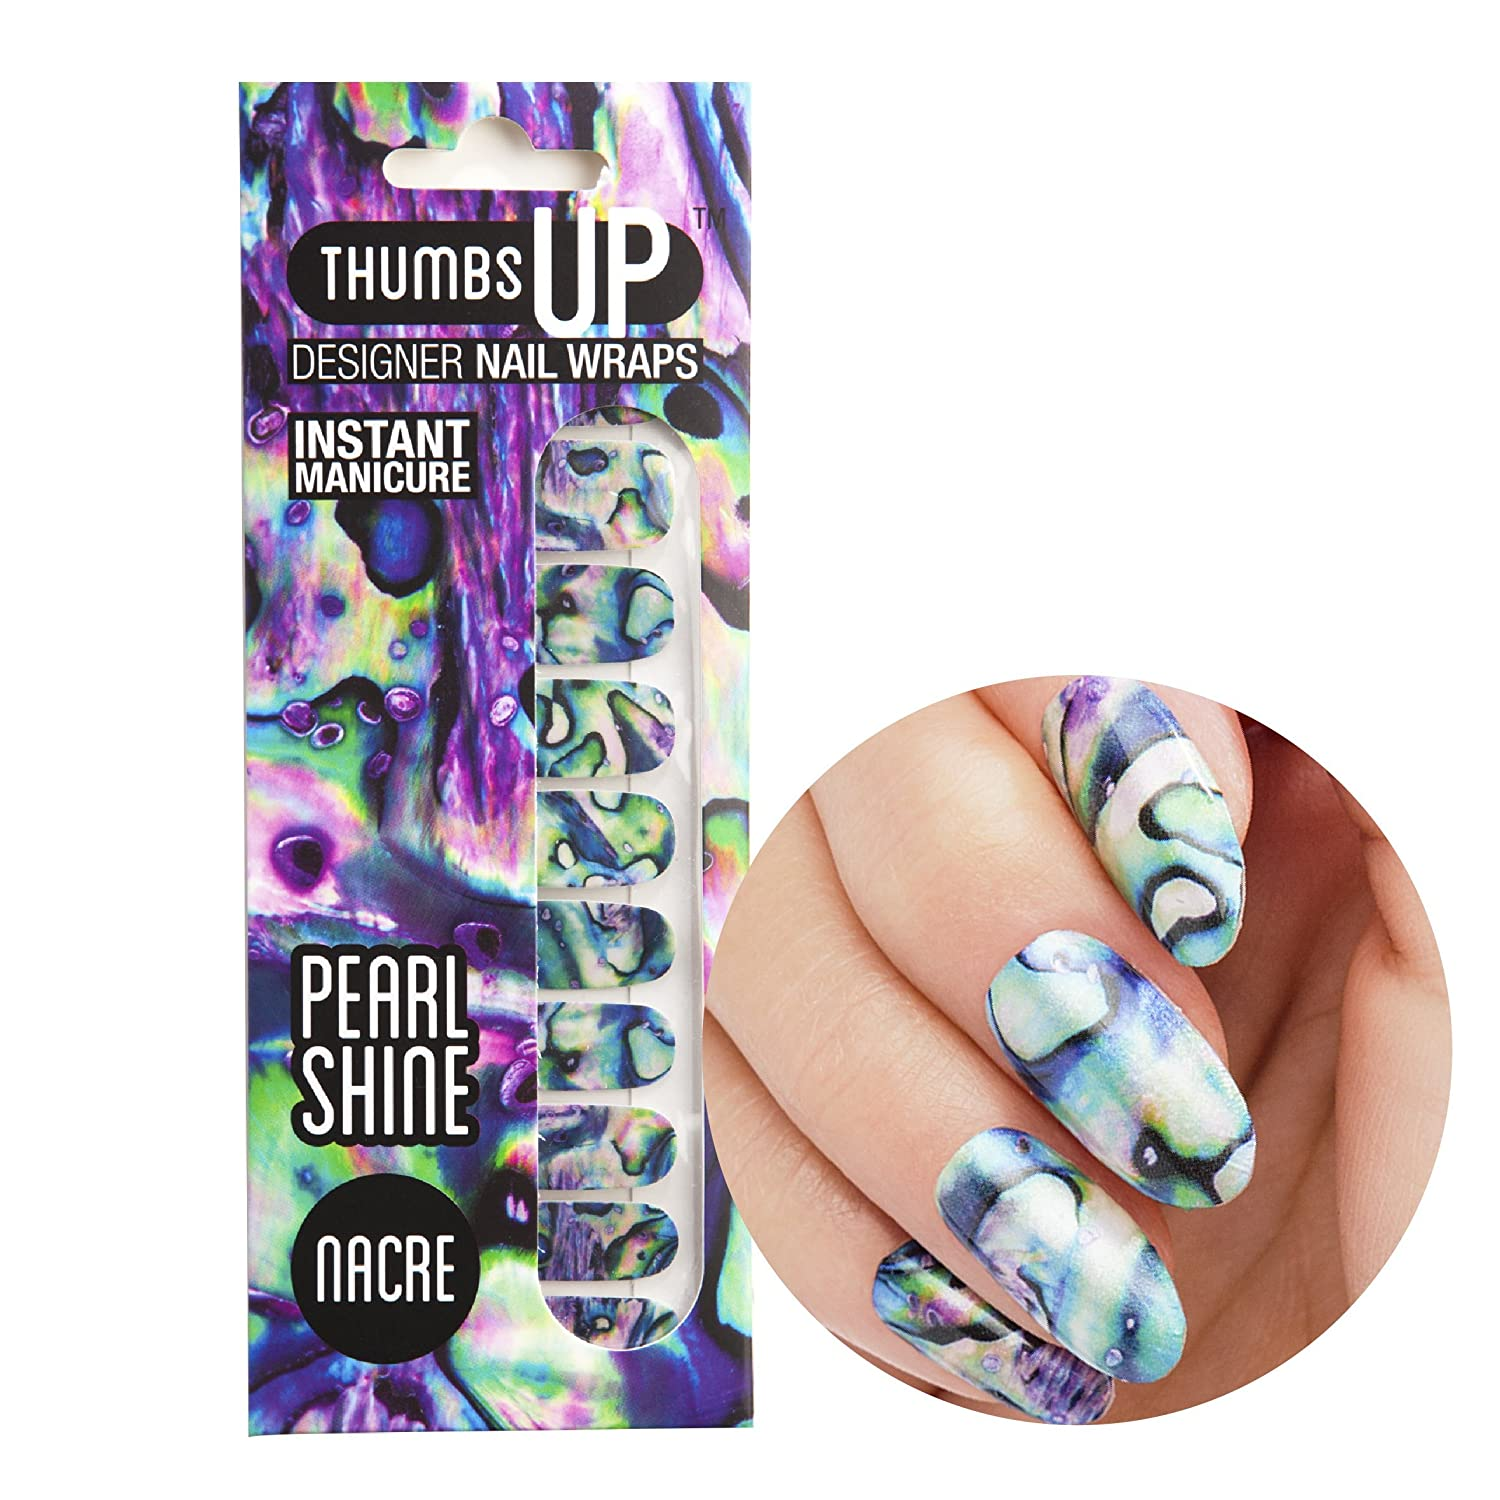 ThumbsUp Nails Nacre Pearlescent Pearly Nail Wraps / Self-adhesive / Nail Foil Polish Strips / Full Coverage Nail Art Stickers / 20 Wraps Per Pack